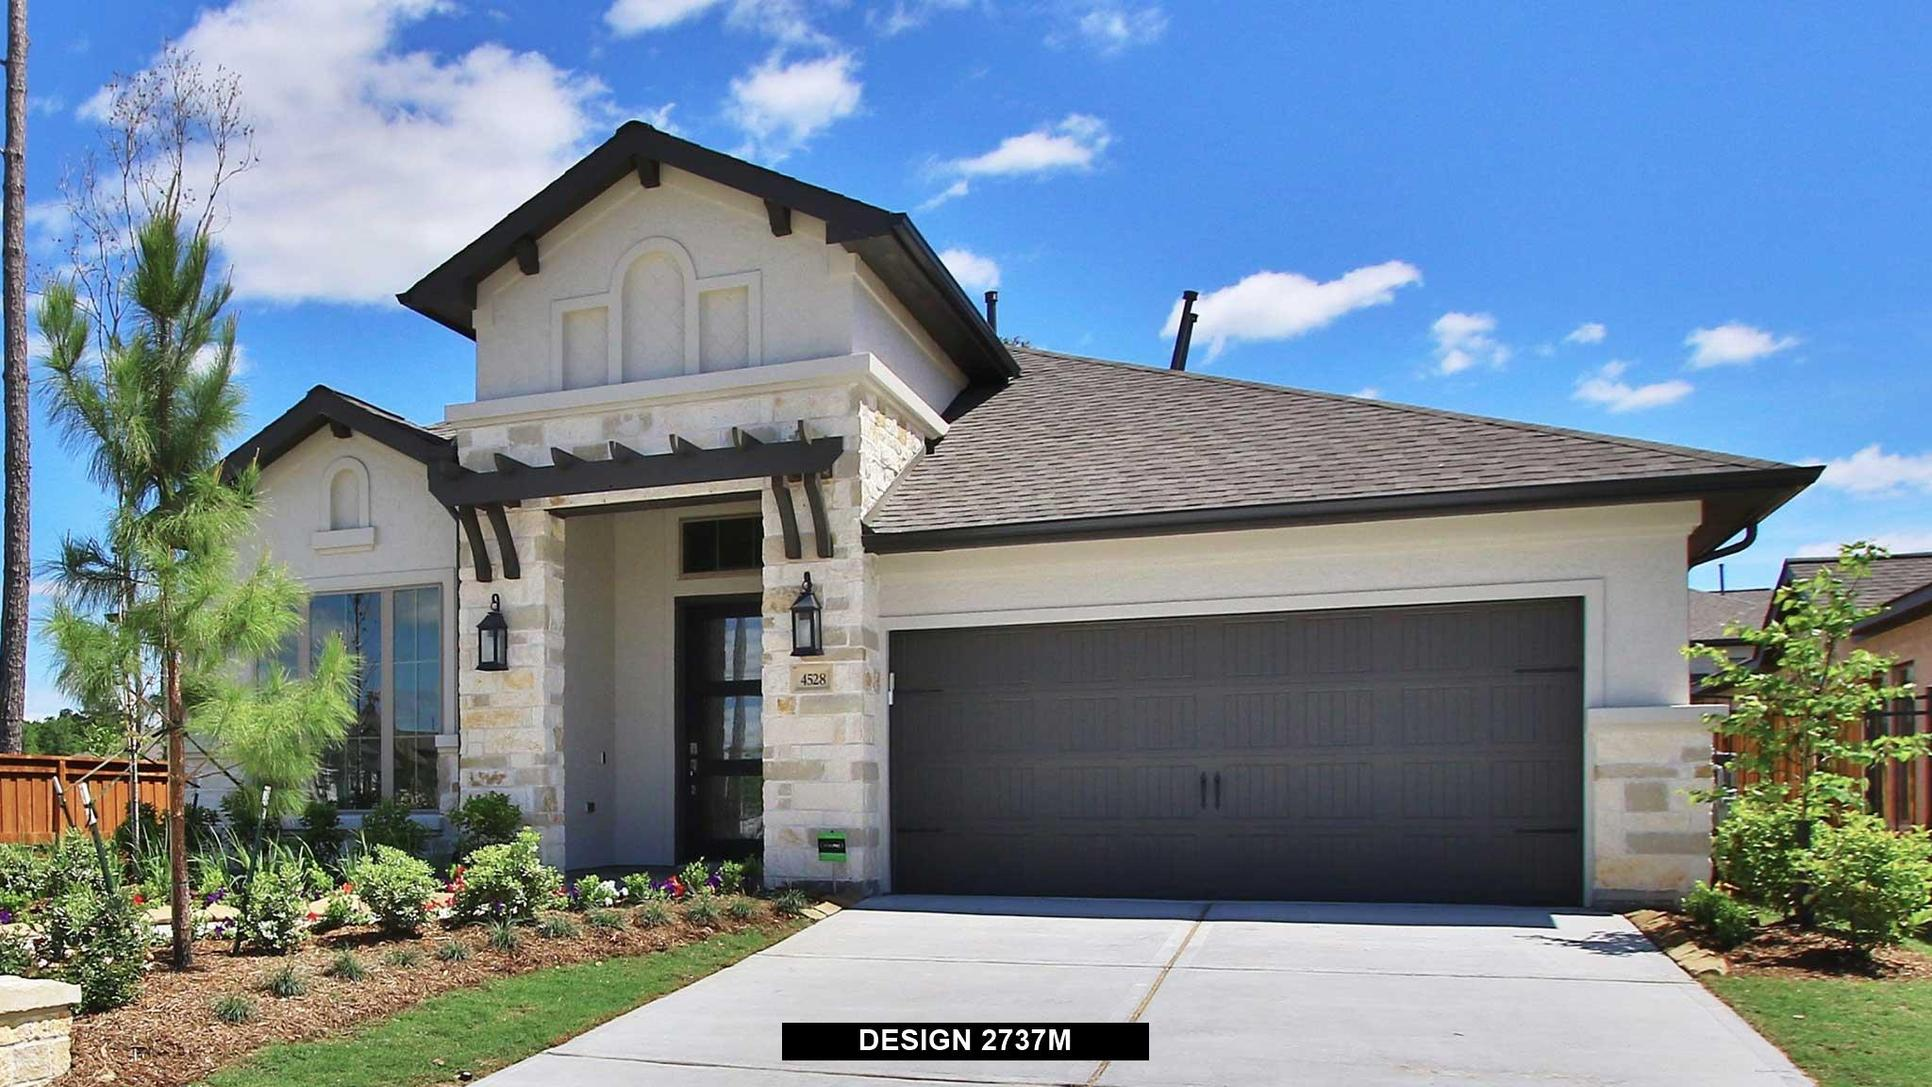 Plan 2737M:Representative photo.  Features and specifications may vary by community.